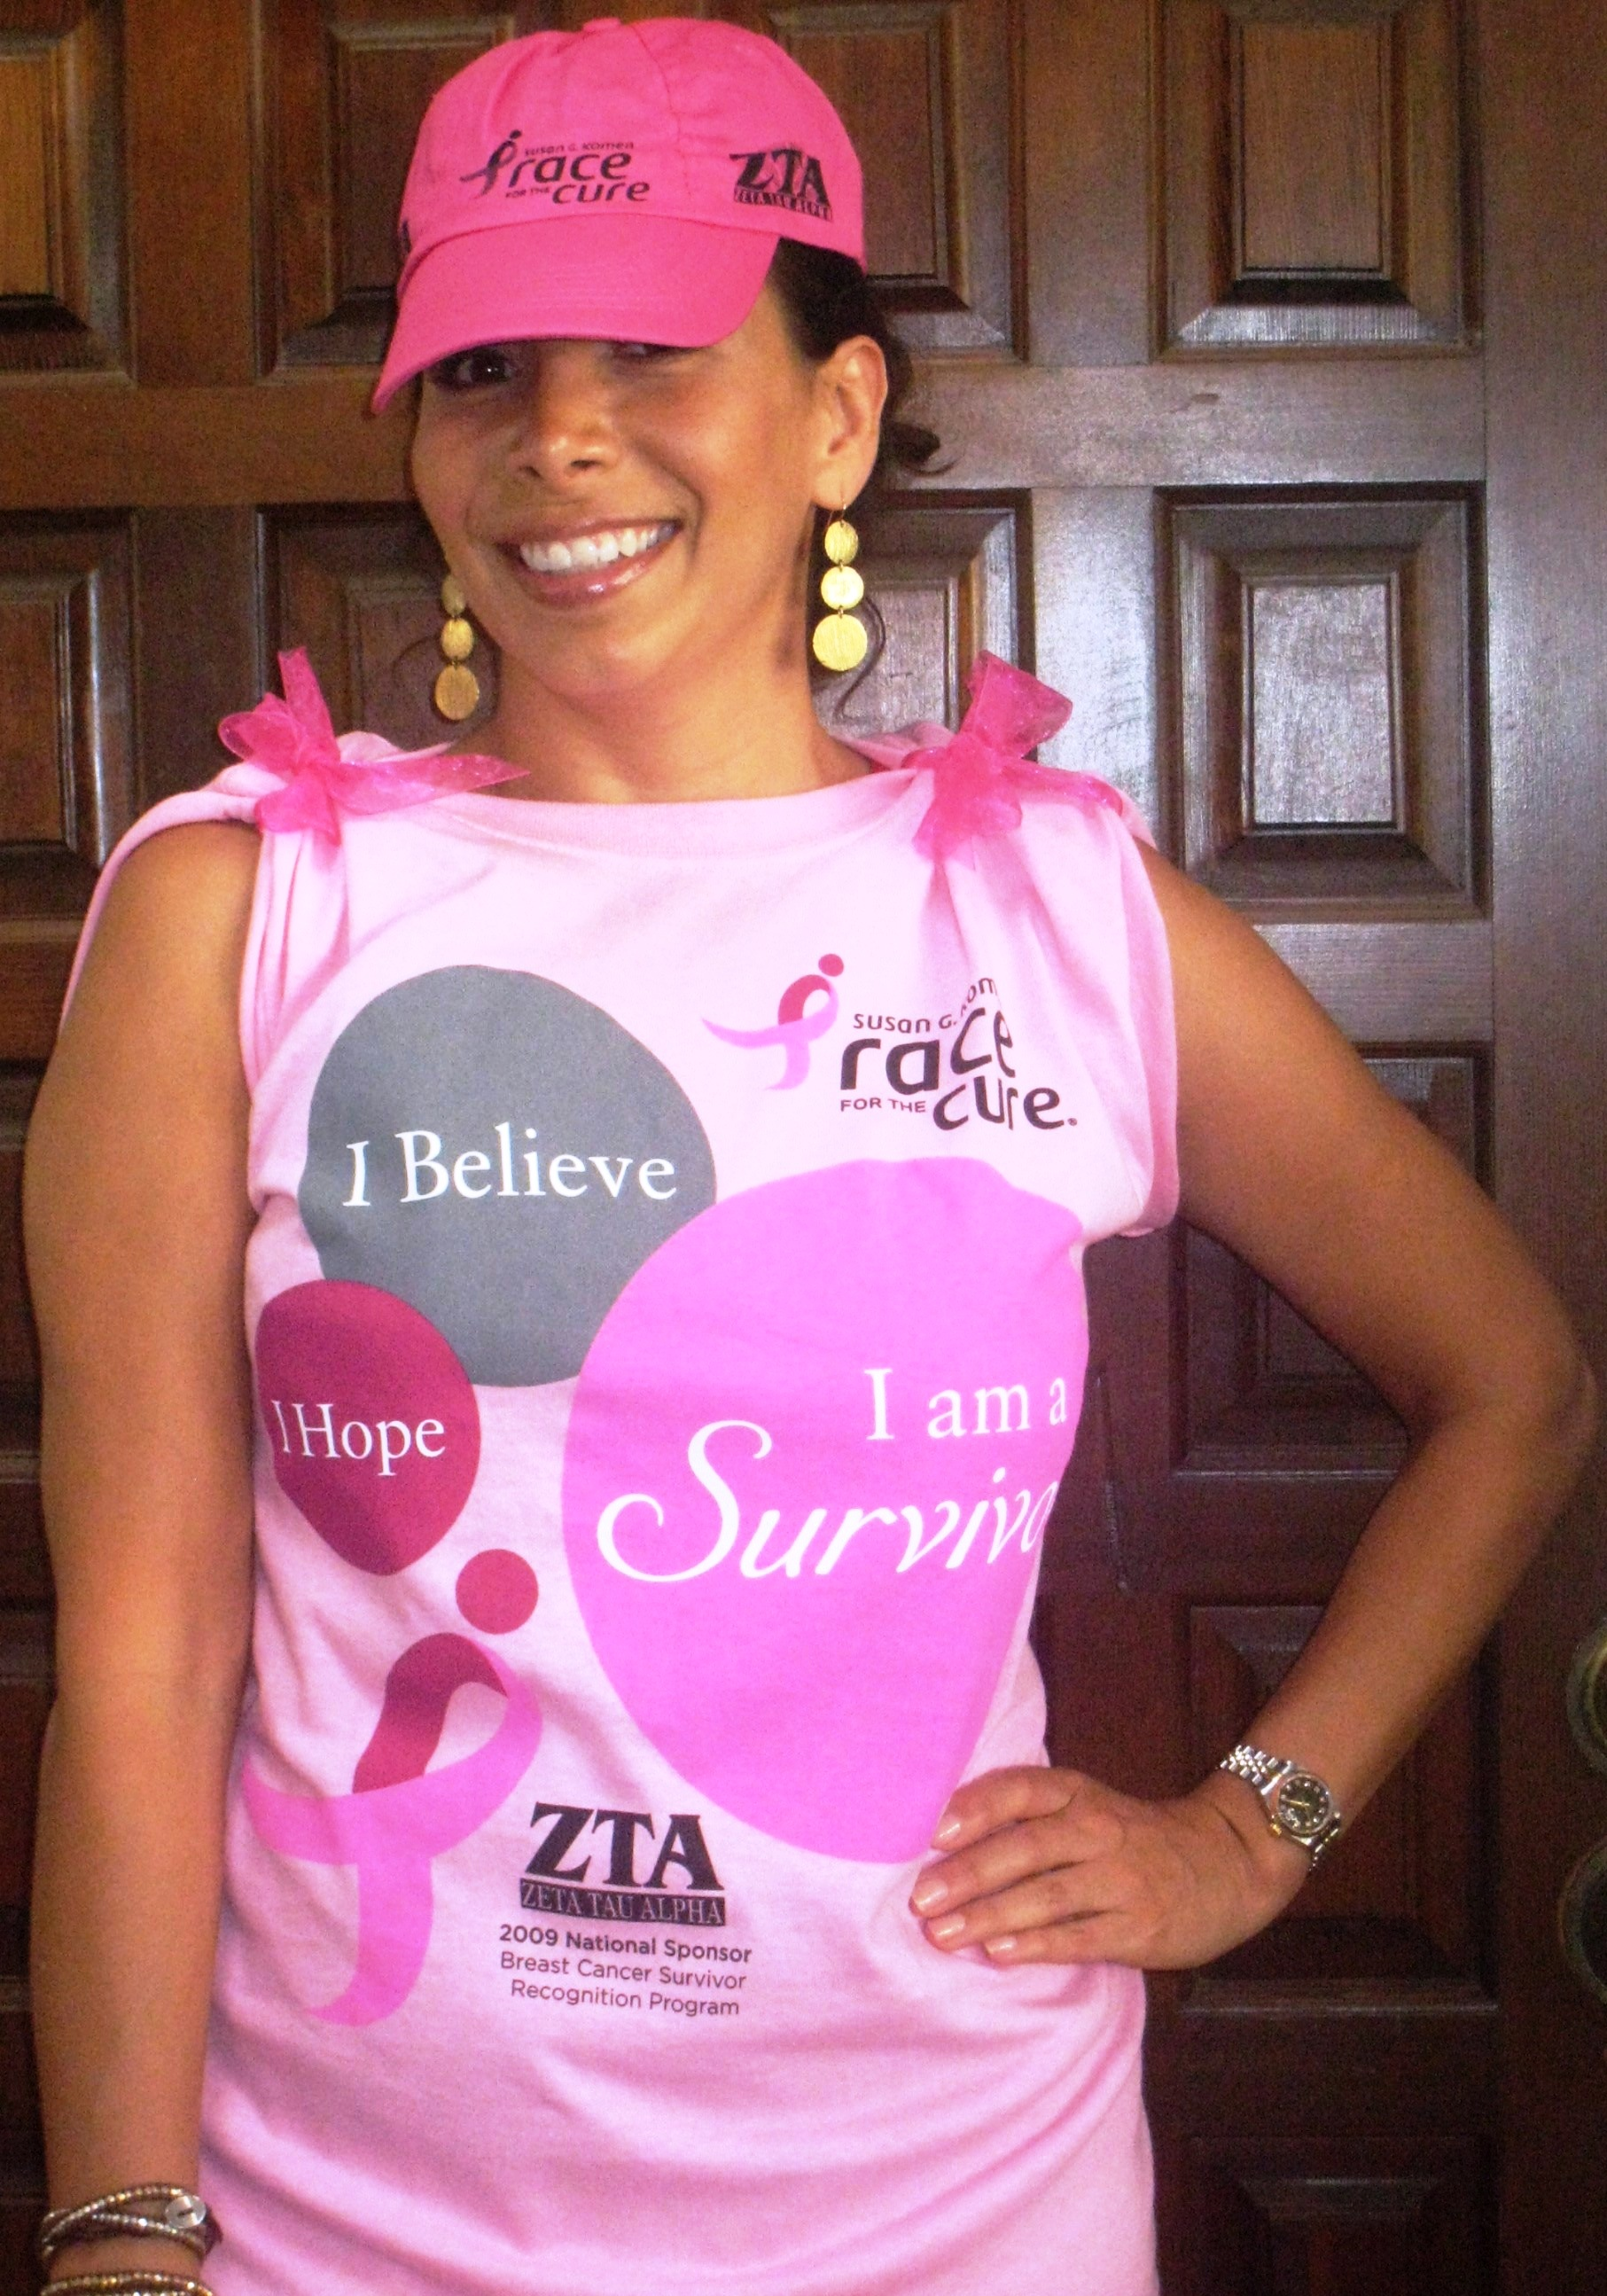 Survivor Monica Olmos gives a sneak peak of the 2009 survivor T-shirt and visor.